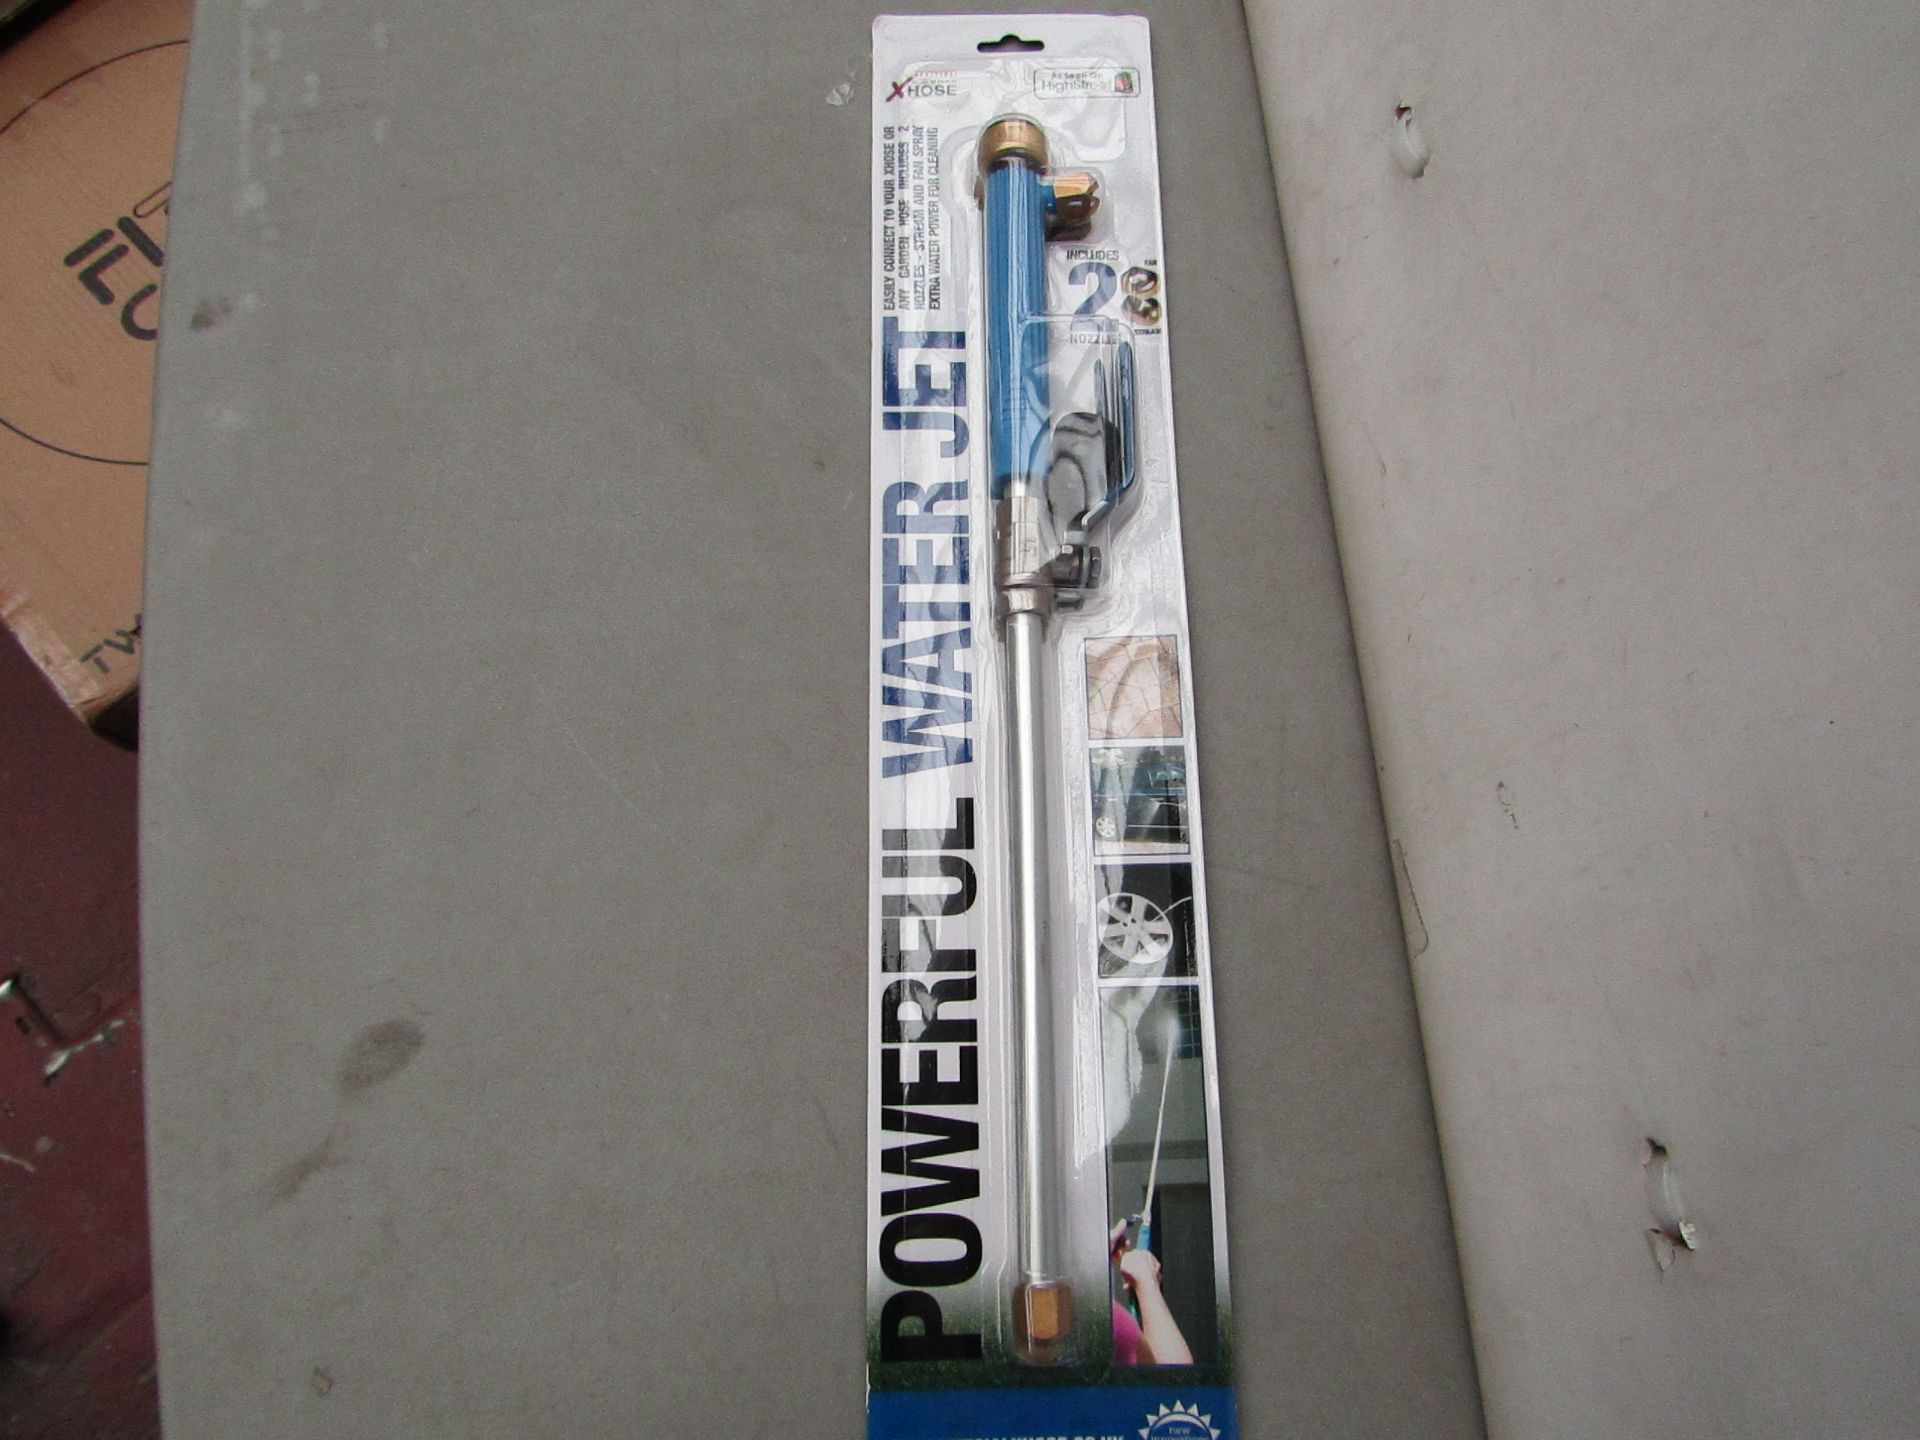 Lot 8 - | 1x | XHOSE POWERFUL WATER JET ACCESSORY | NEW | NO ONLINE RESALE |